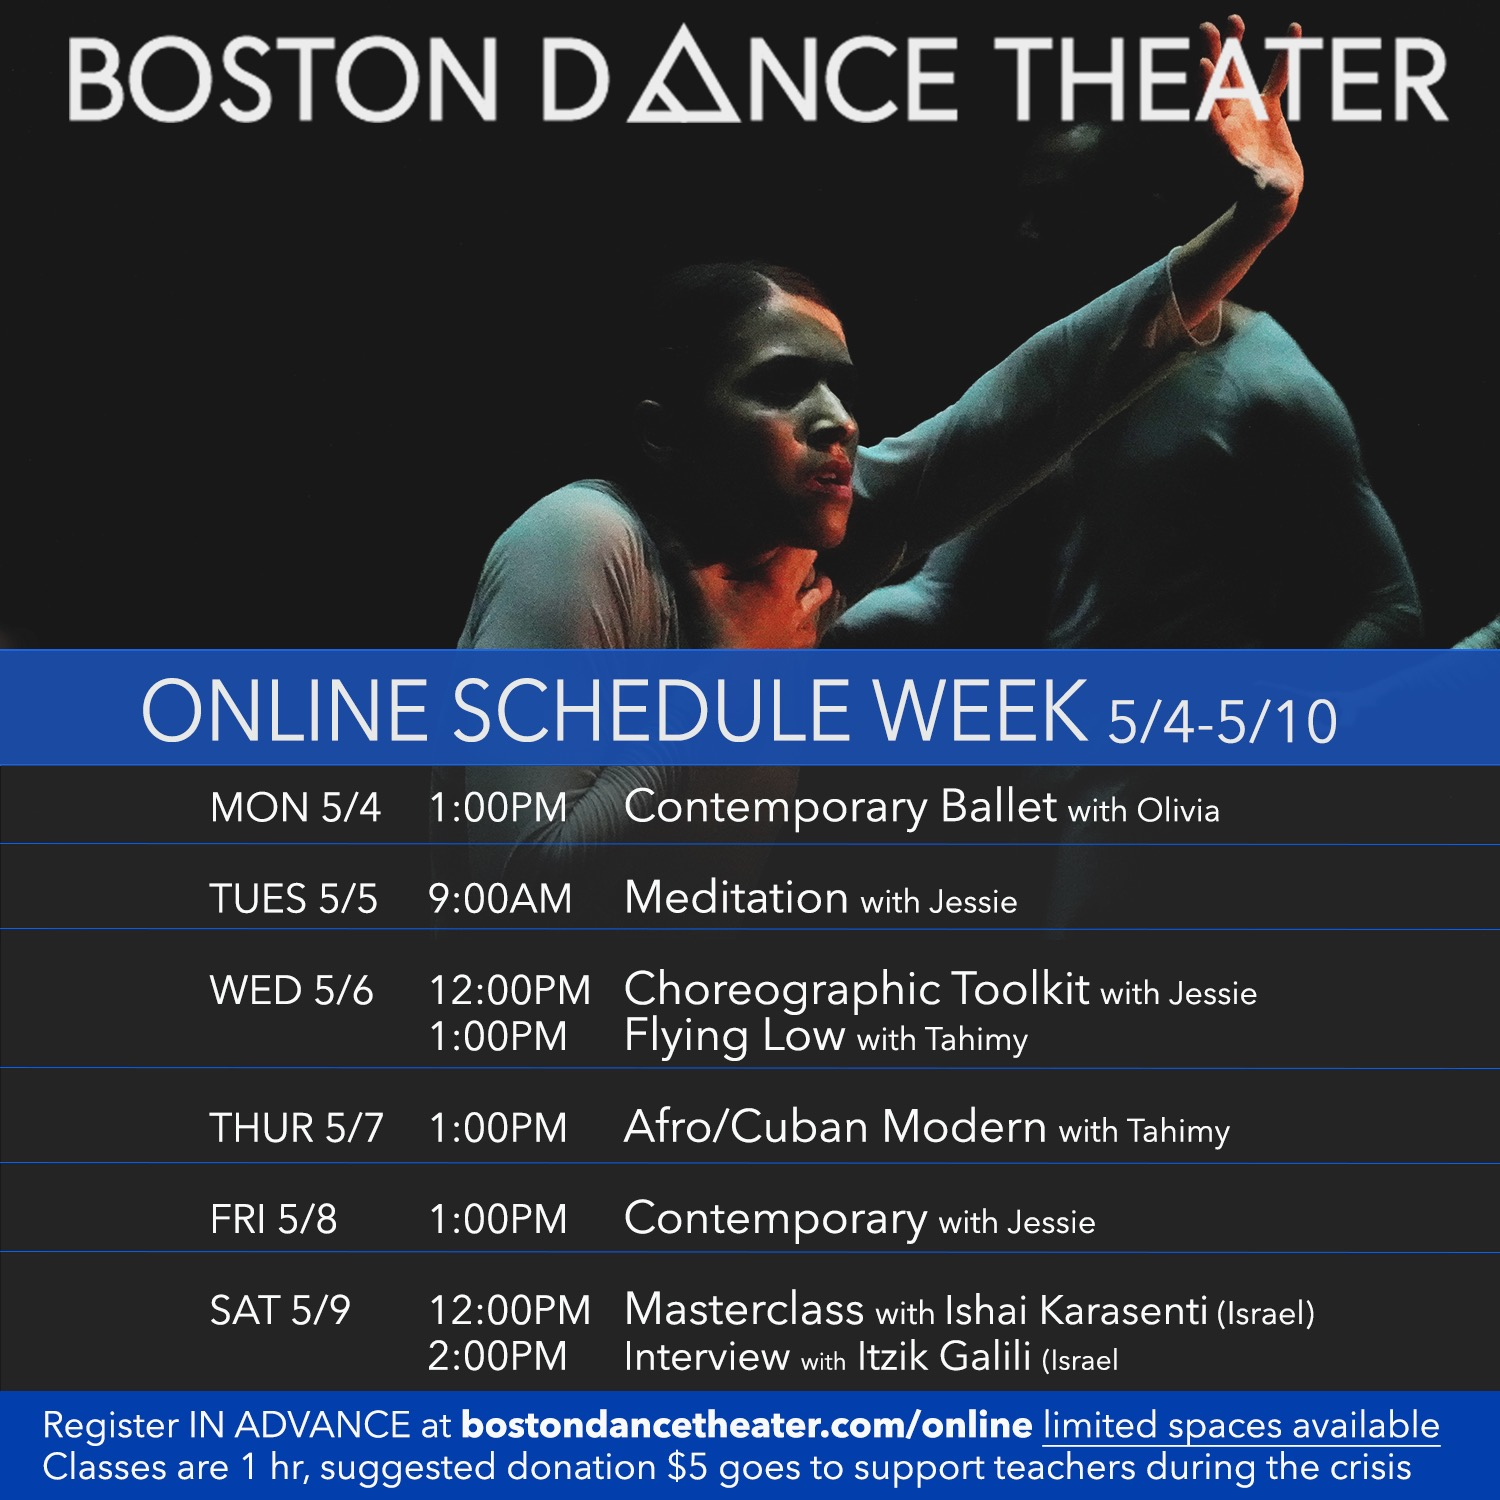 Choreographic Toolkit with Jessie, Boston Dance Theater